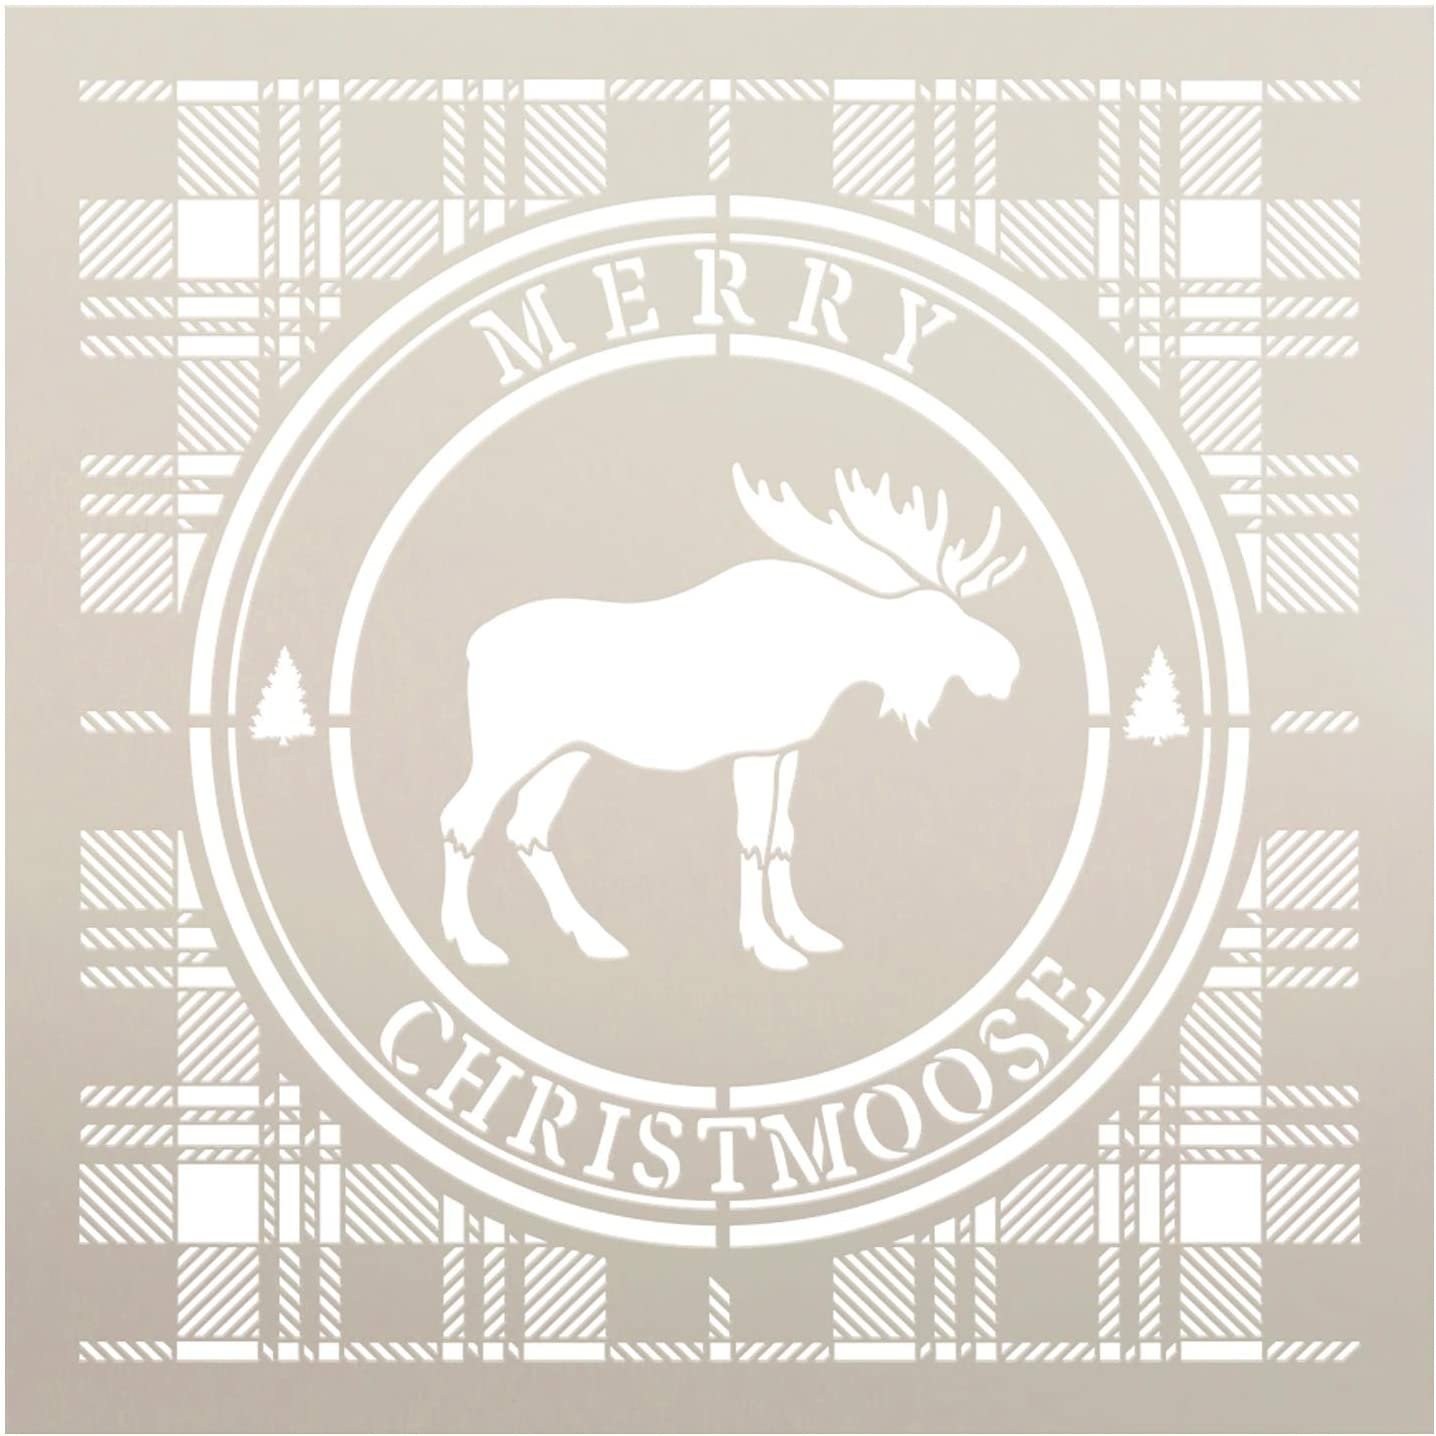 Merry Christmoose Stencil by StudioR12 | DIY Winter Plaid Pine Tree Home Decor Gift | Craft & Paint Wood Sign | Reusable Mylar Template | Select Size